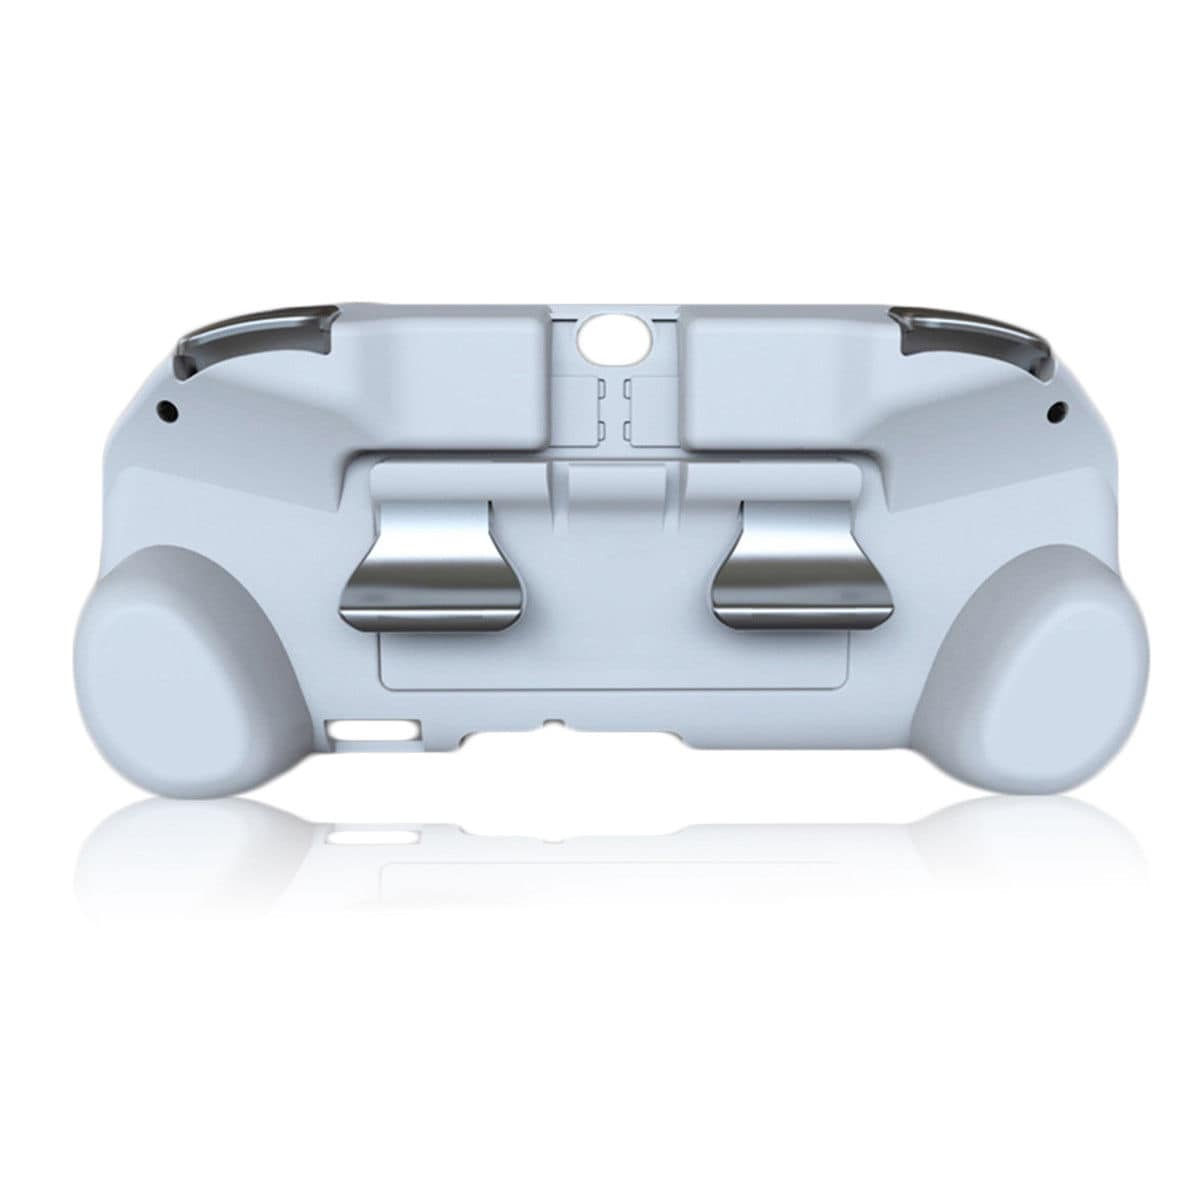 L2 R2 Hand Grip Handle Case & L3 R3 Trigger Button Touchpad White For PS VITA 2000 - 1